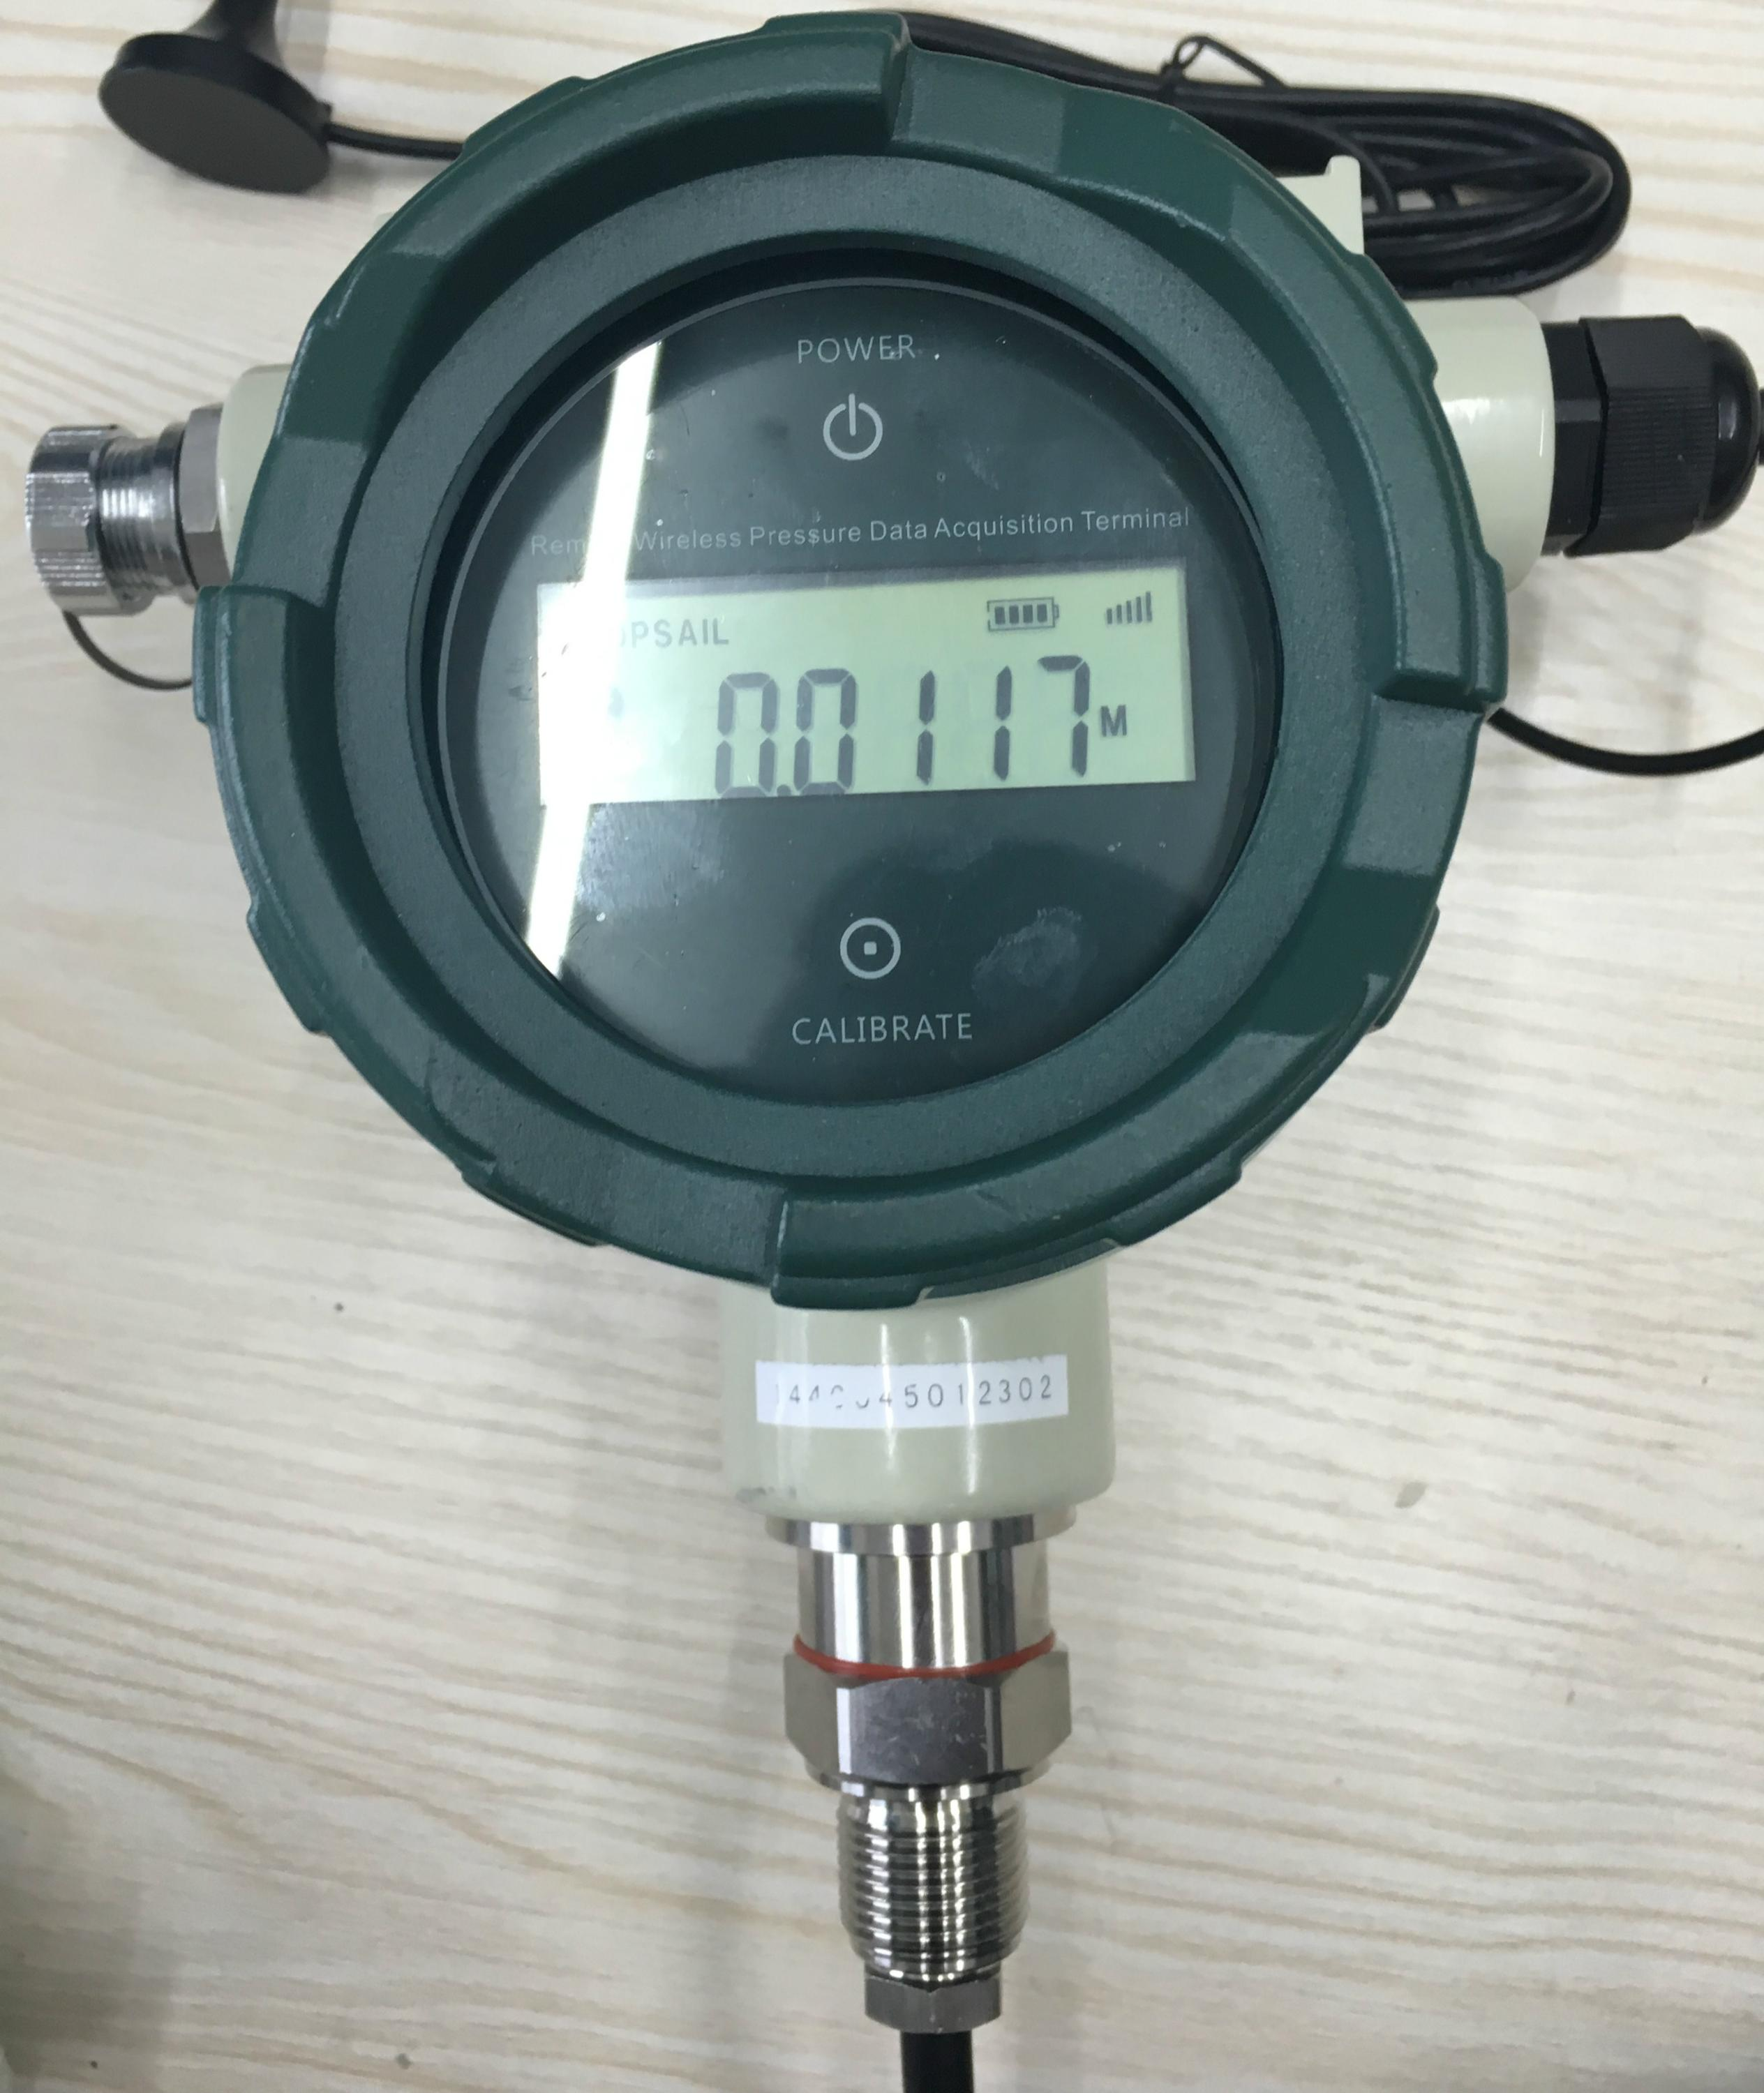 H2da66ebf630e4c159f3e32c534cd535d2 - NB-IOT Verified Internet of Things Device Water Tank Level Sensor